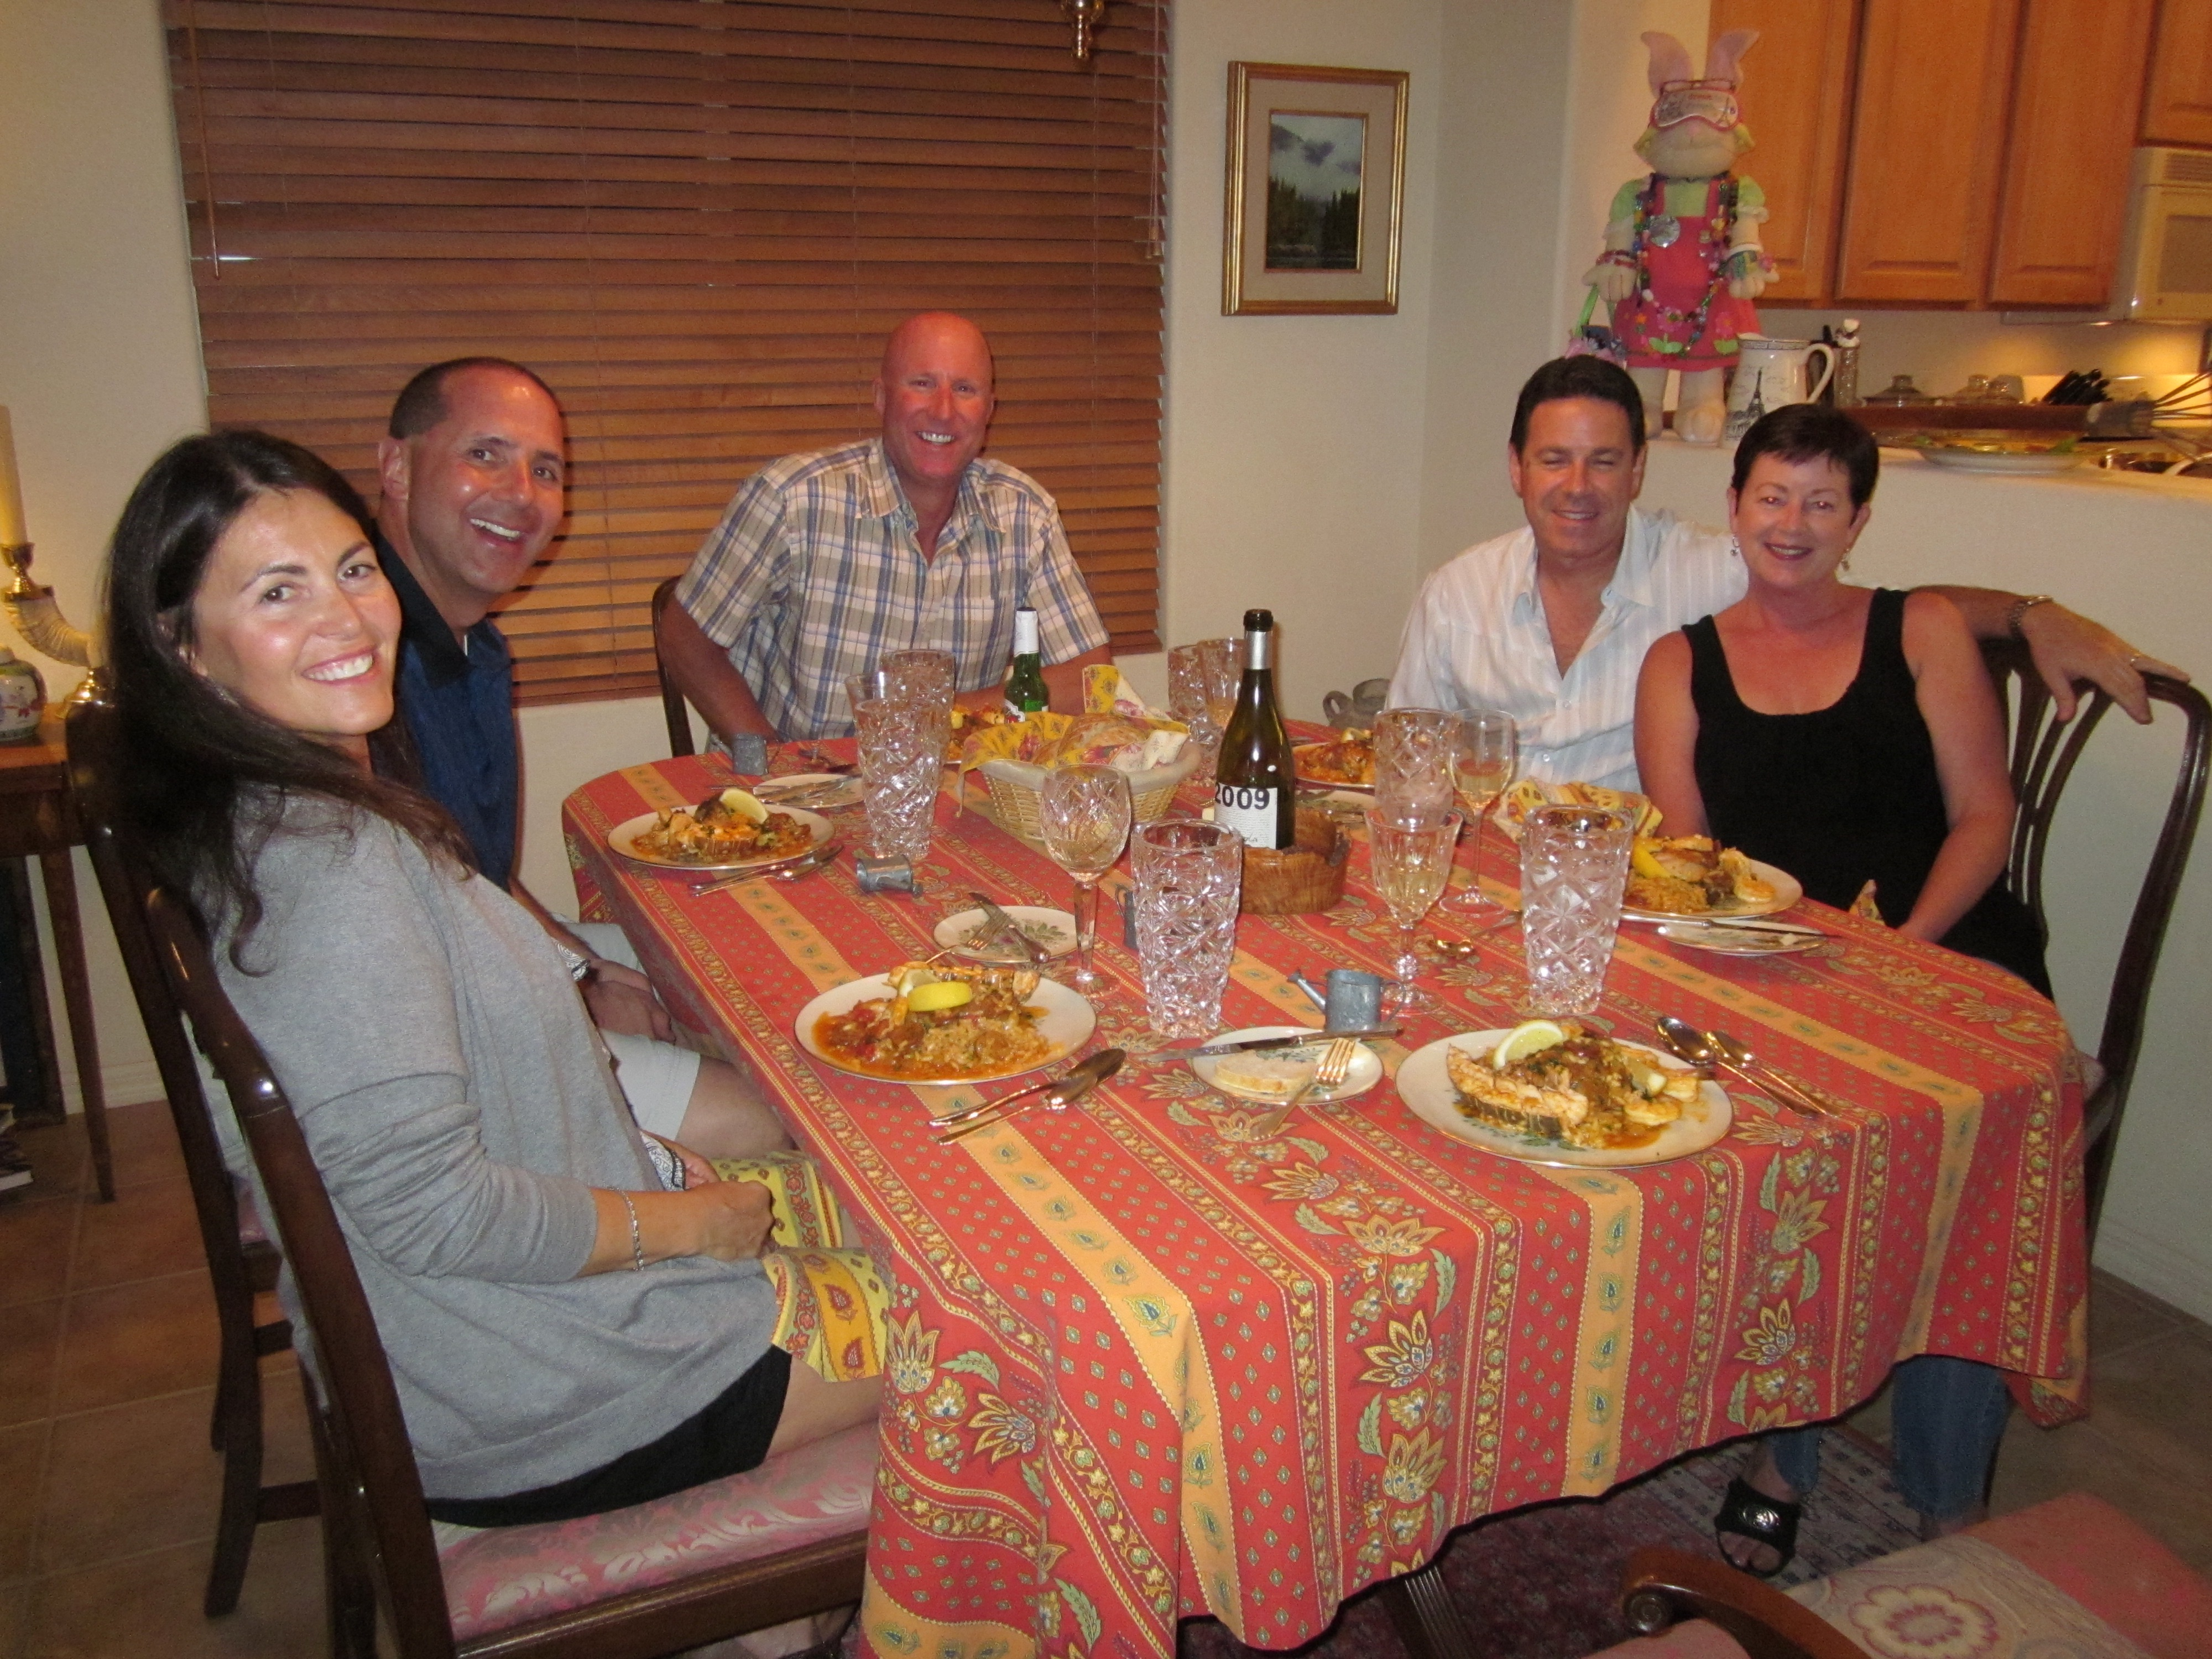 It all began in Henderson, Nevada with L to R: Adriana, Dominick, Ray, Bobby (Adriana's husband) and Michele.